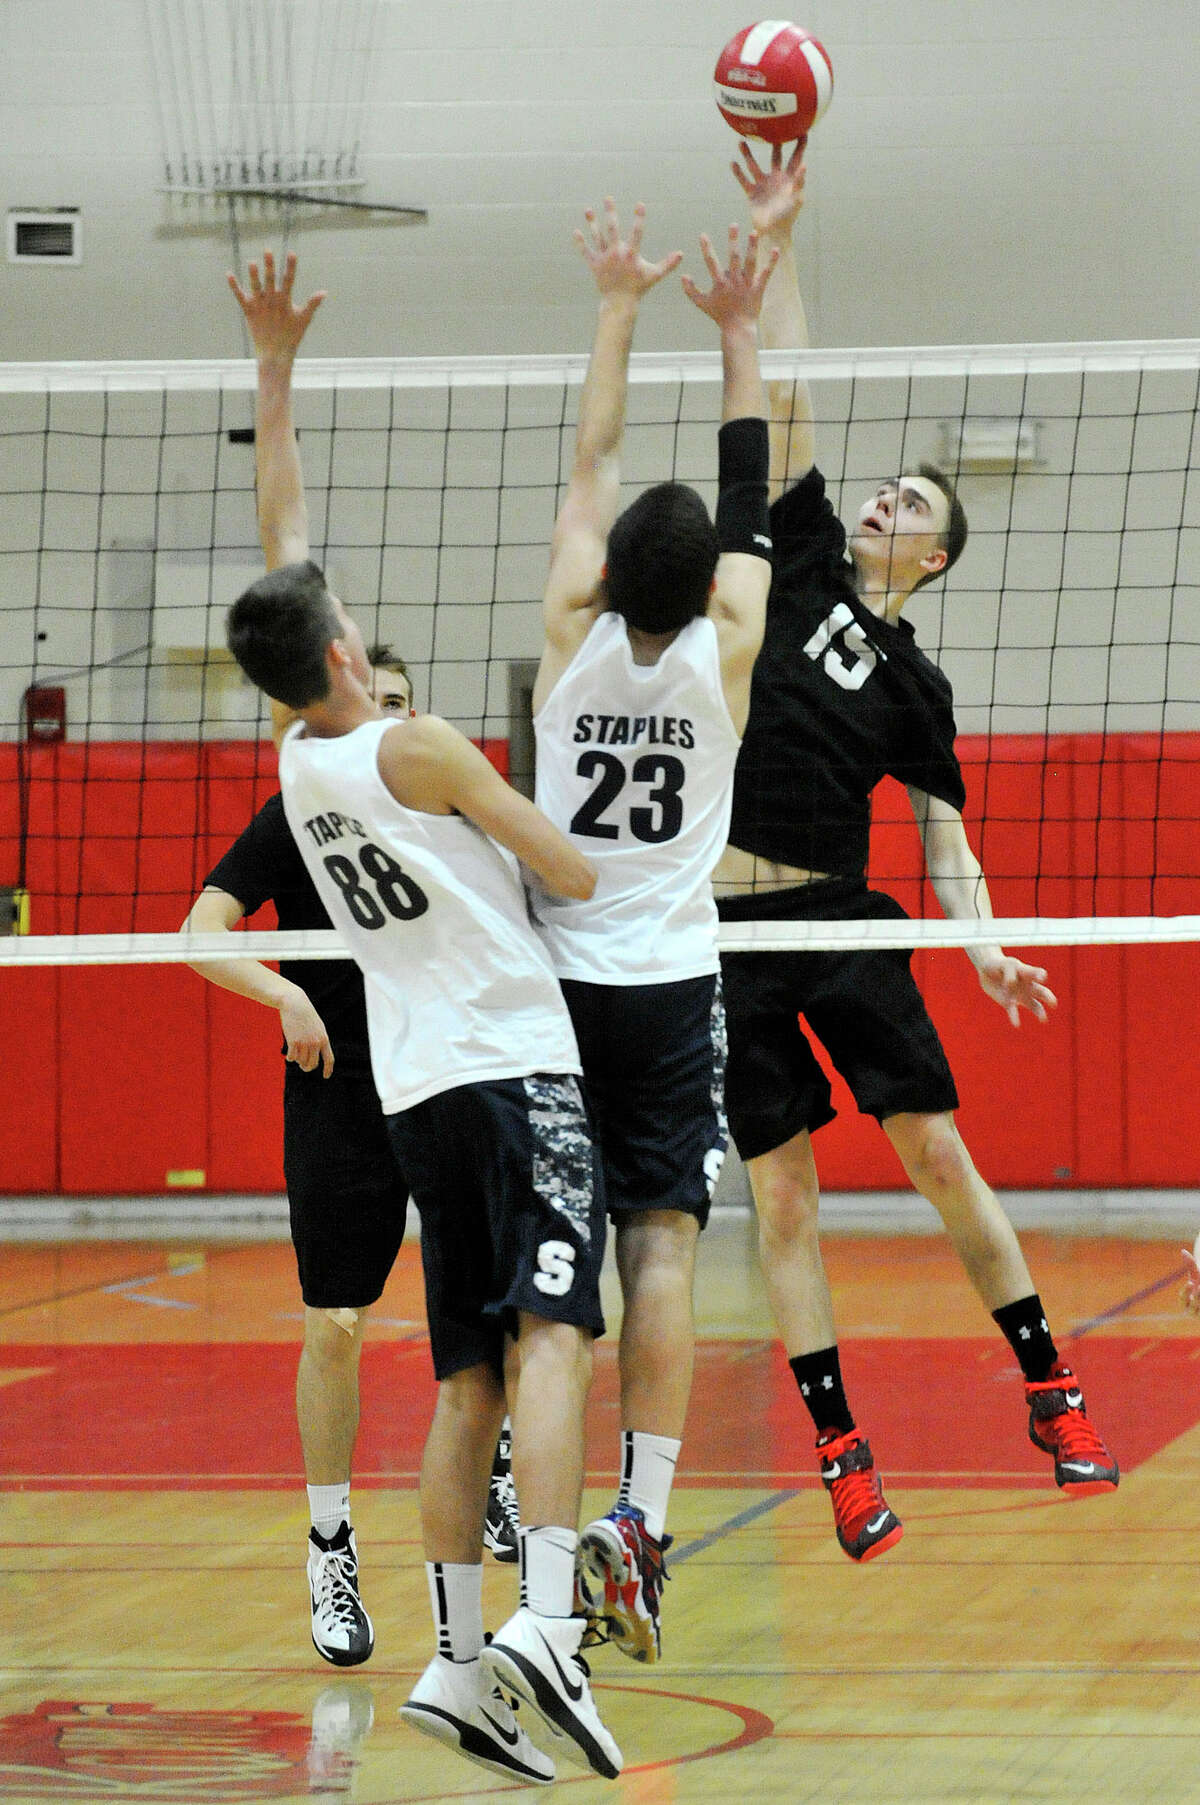 Staples' Keiran Simunovic (88) and Jason Bernstein (23) attempt to block the shot from New Canaan's Mikhail Dayton during their volleyball match at New Canaan High School in New Canaan, Conn., on Wednesday, April 22,2015.